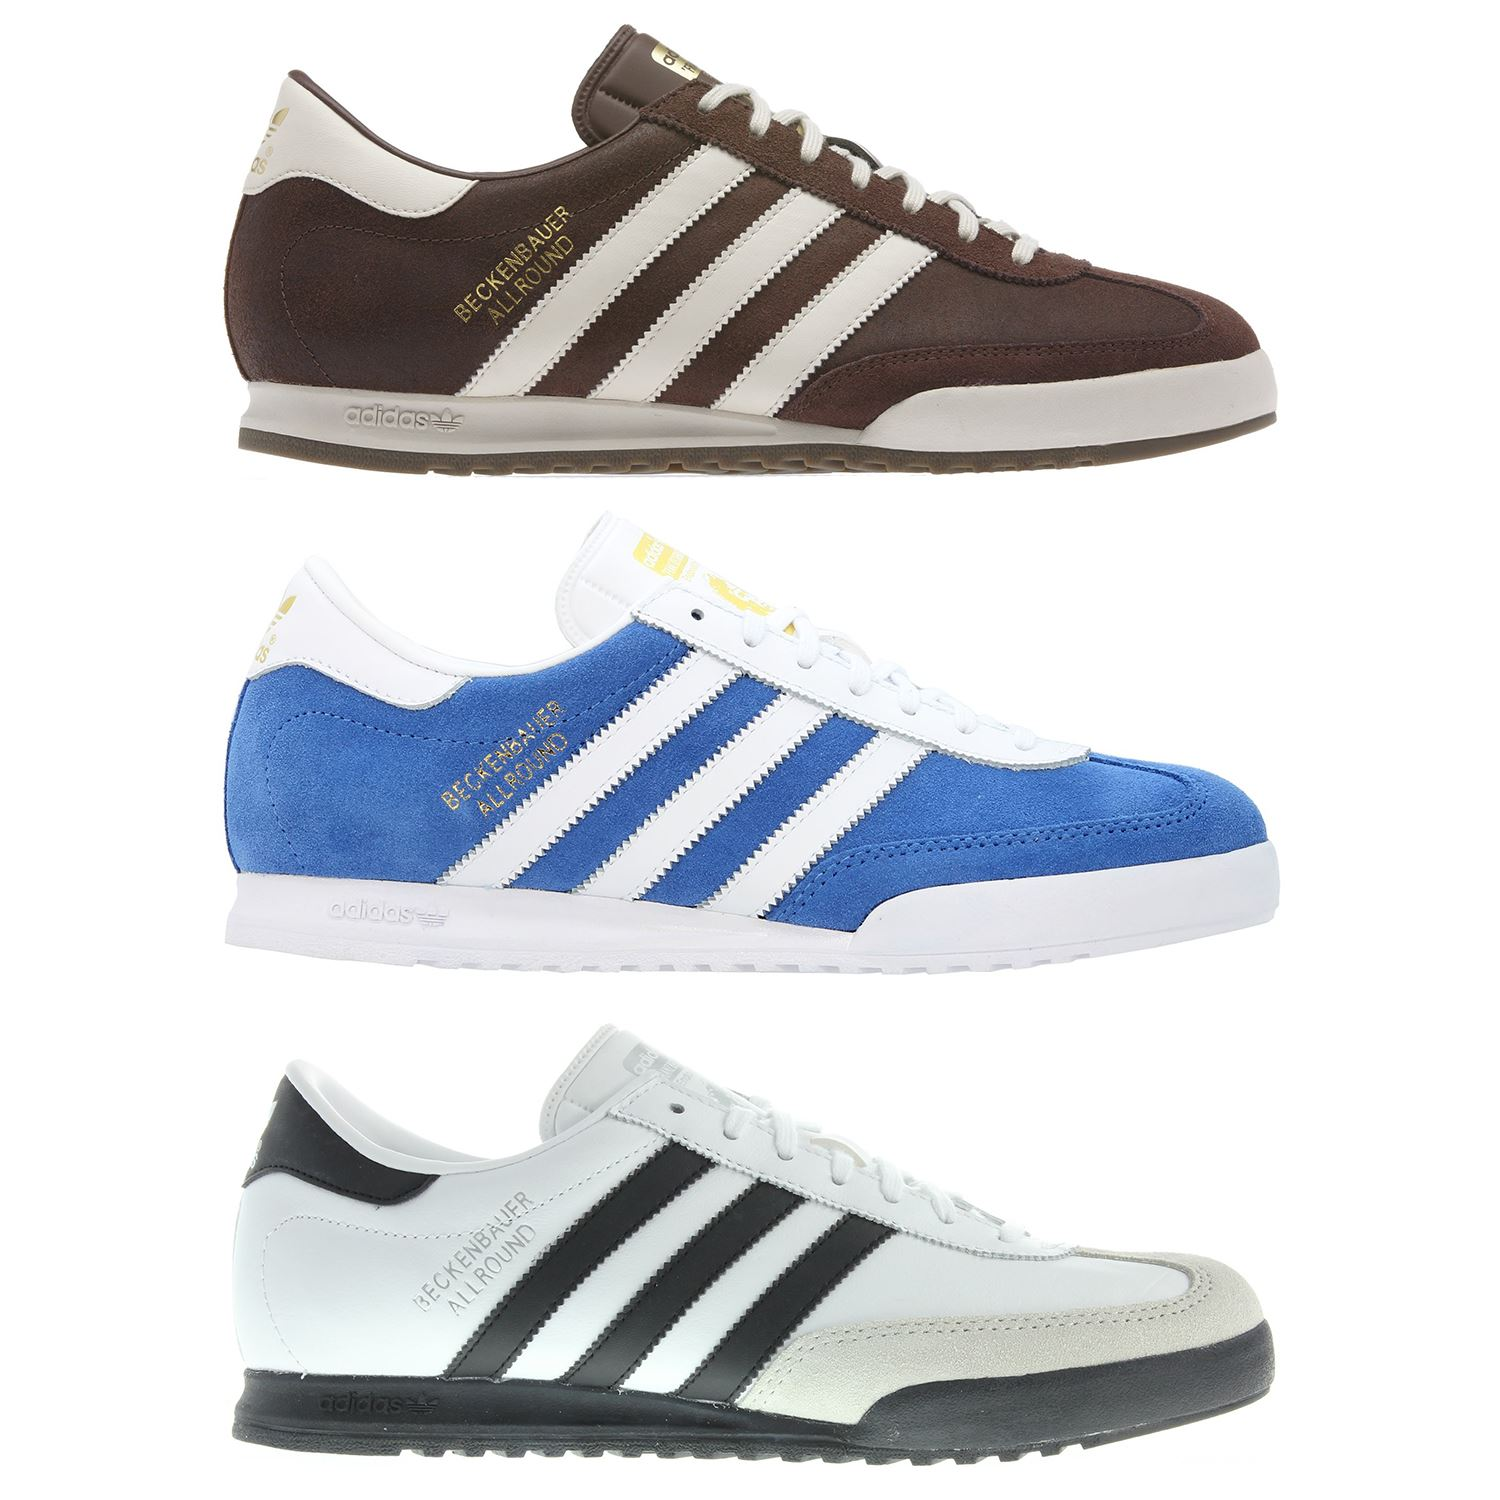 factory authentic ac10e 4a227 ADIDAS ORIGINALS MEN S TRAINERS BECKENBAUER ALL ROUND BLUE WHITE ...